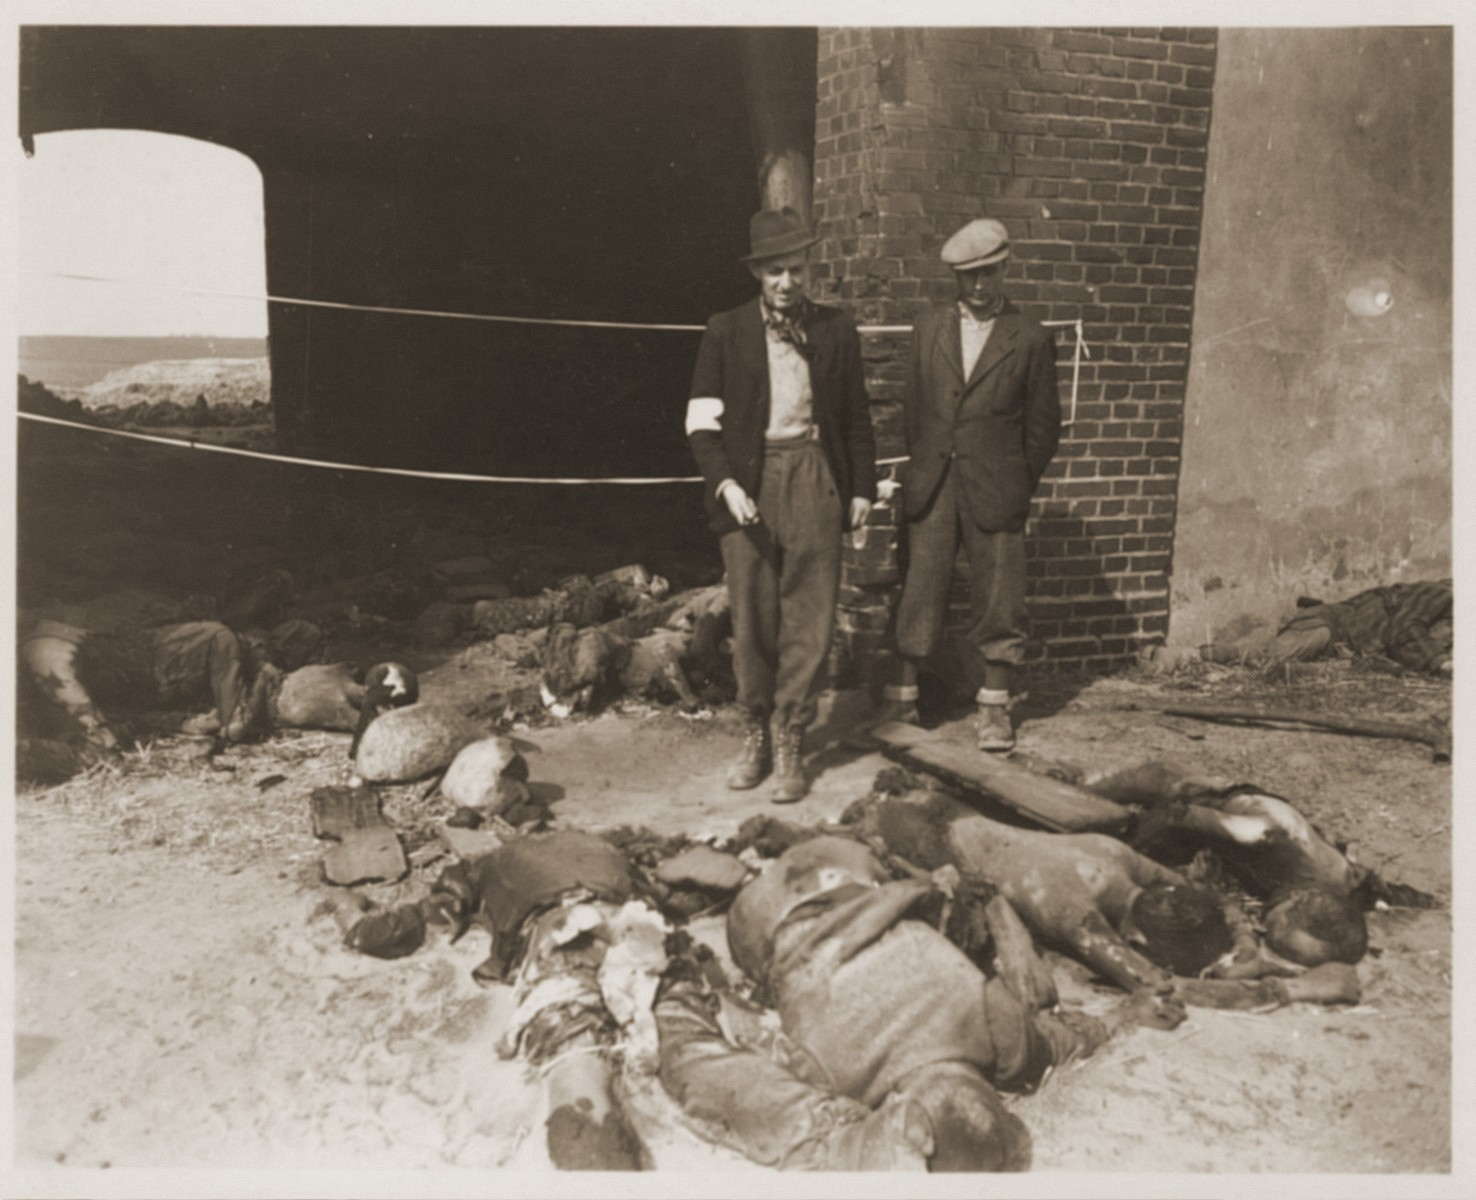 German civilians from Gardelegen stand beside the bodies of concentration camp victims killed by the SS in a barn outside of the town.